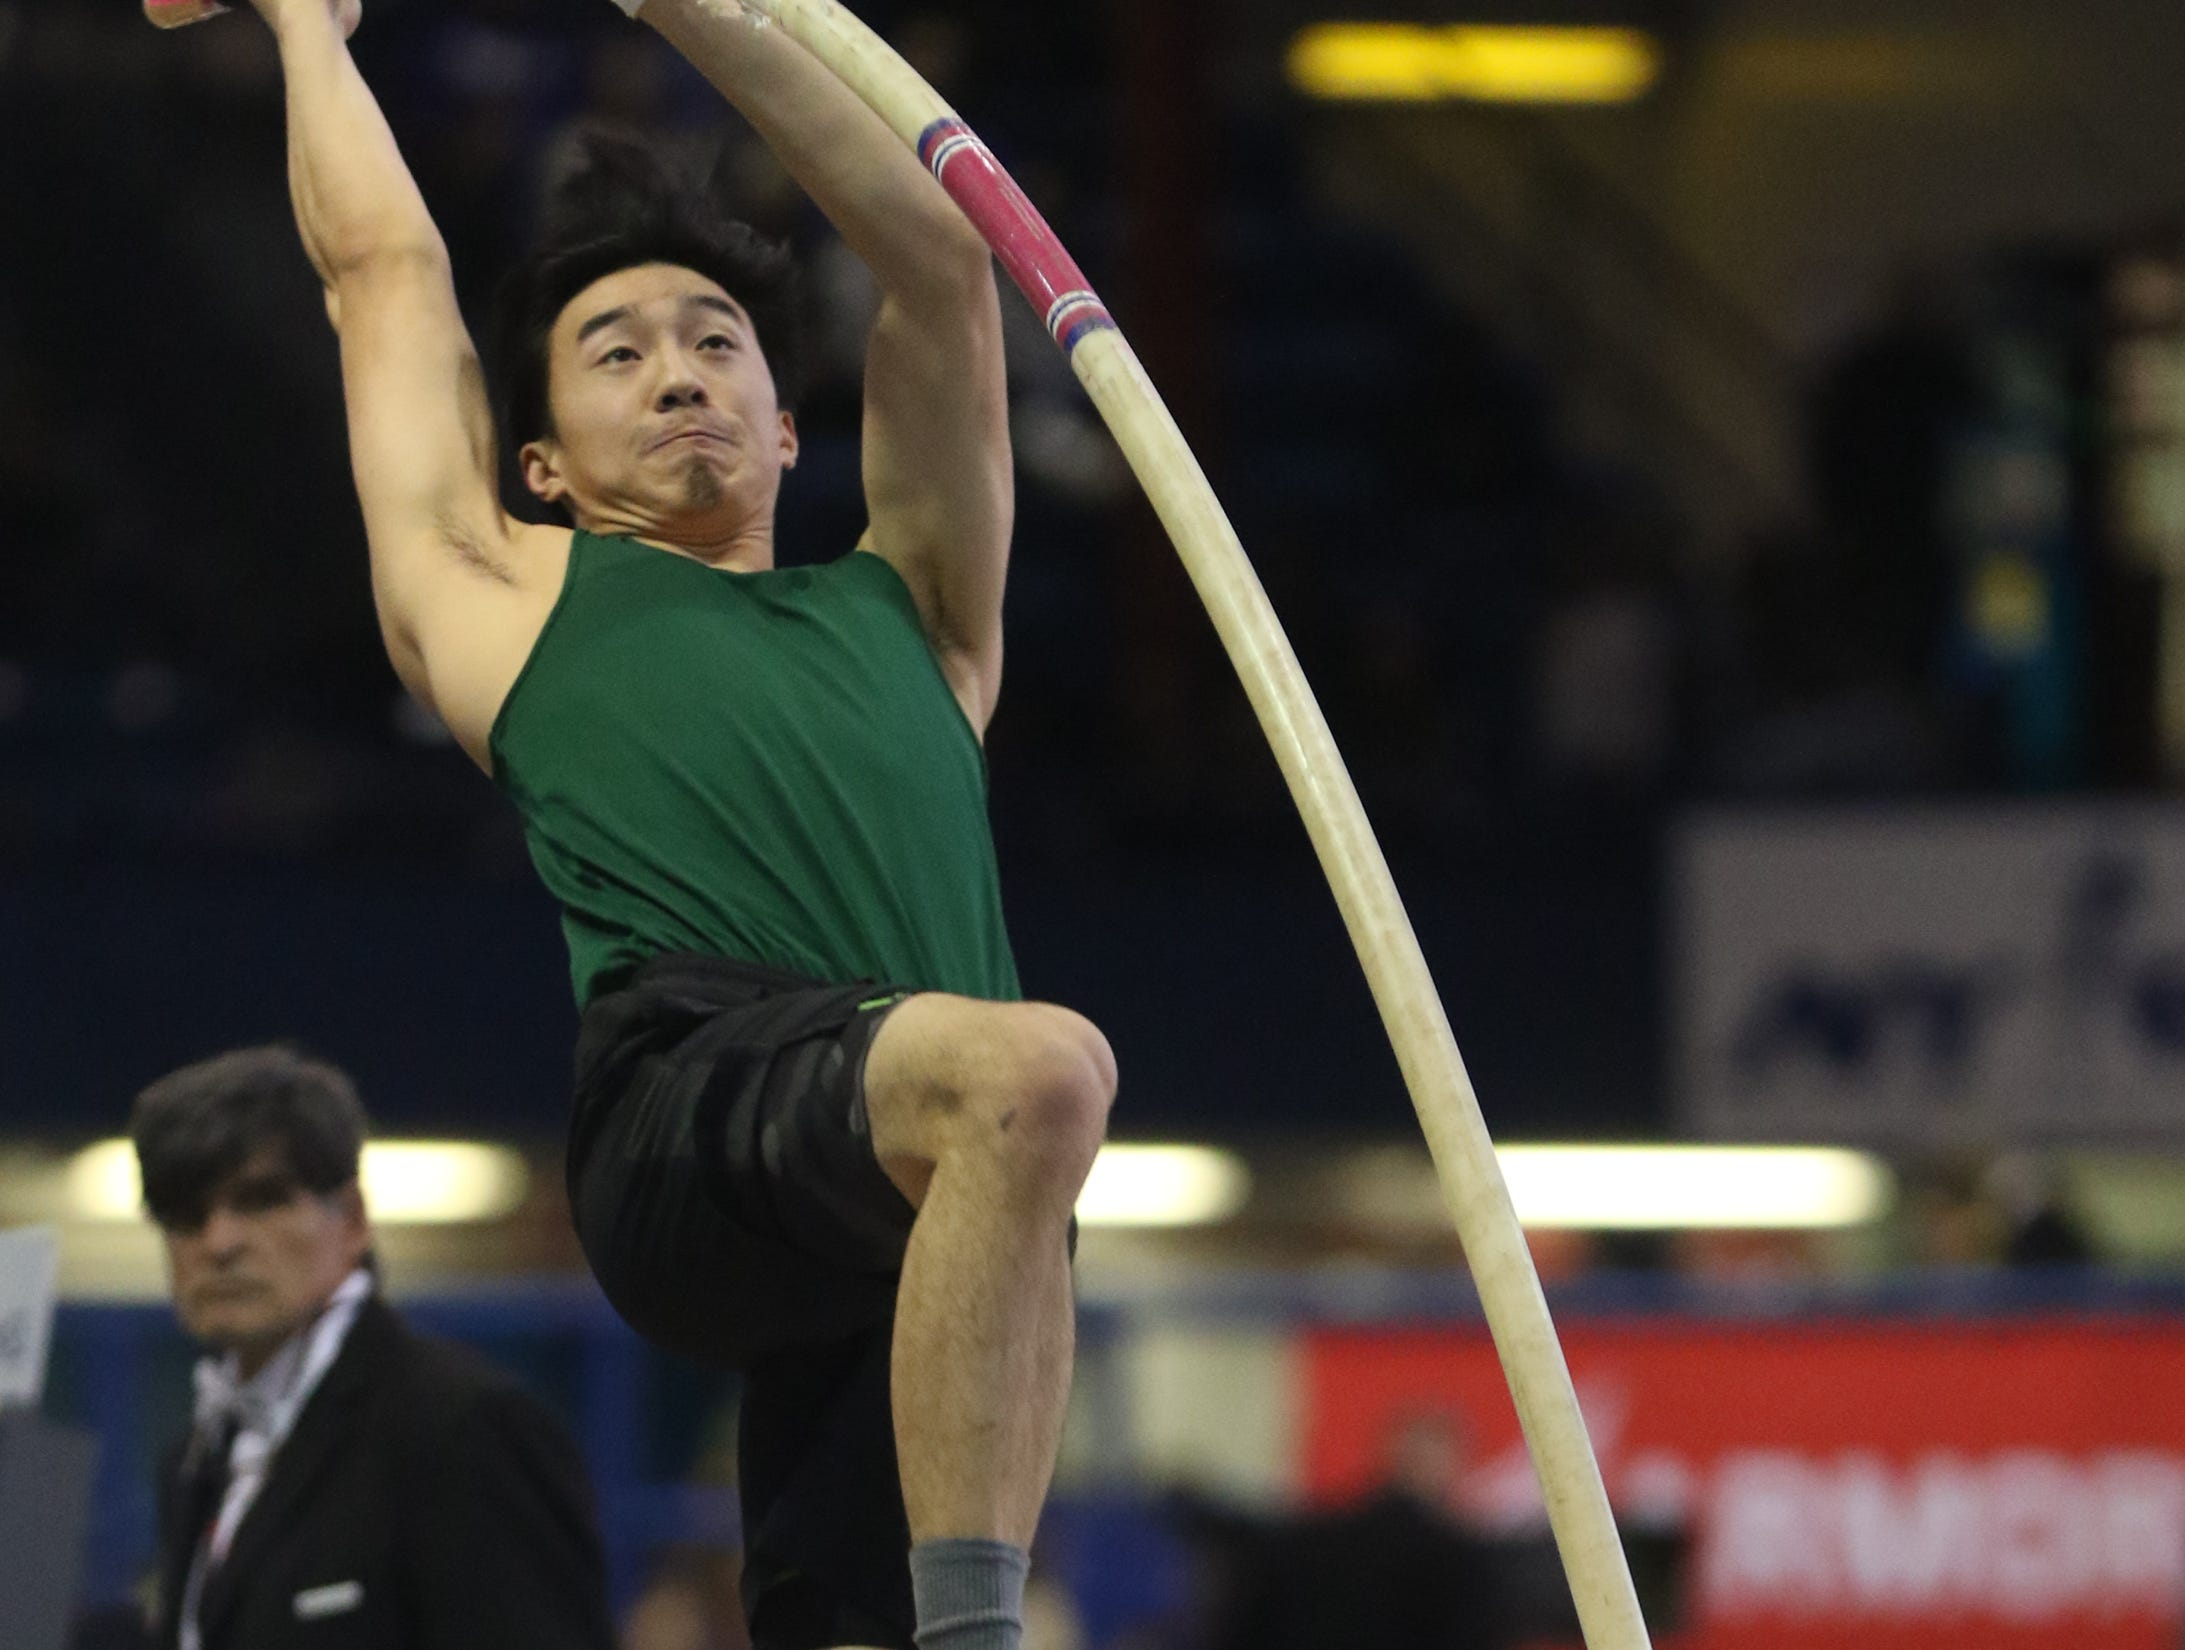 Shane Racey, of Ravena, NY, competes in the pole vault at the Millrose Games. Saturday, February 9, 2019